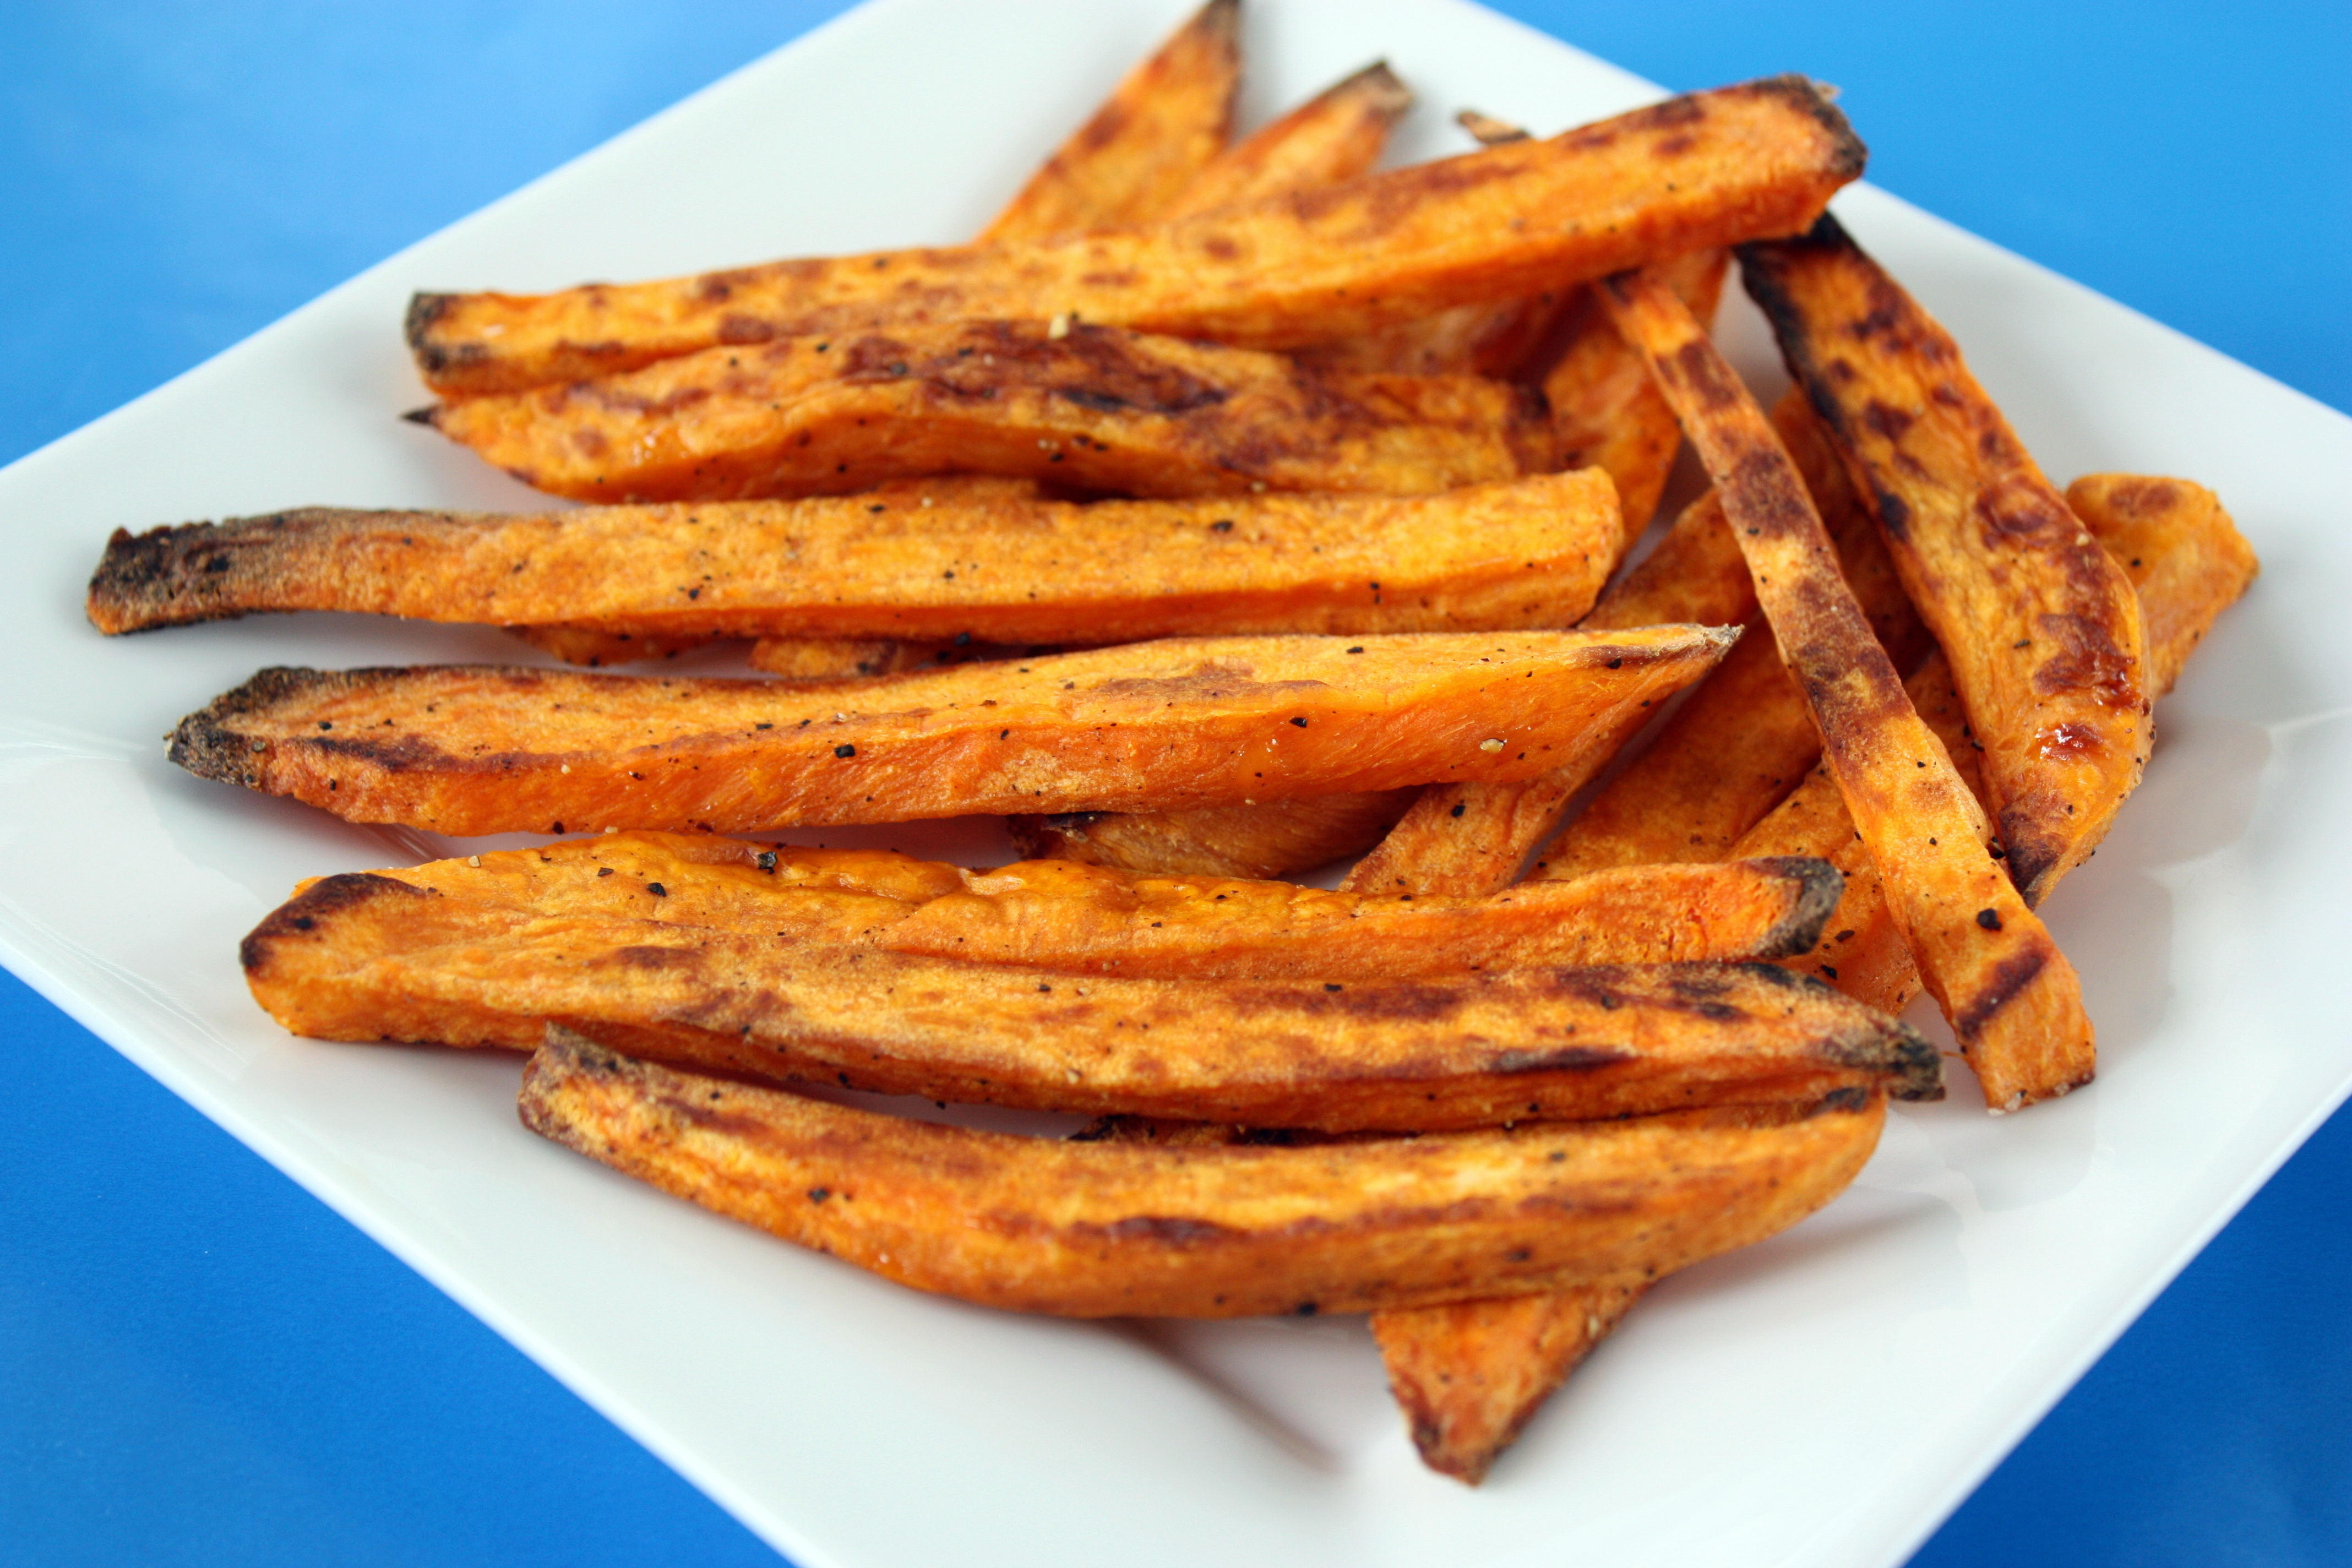 00-roasted-sweet-potatoes-03-new